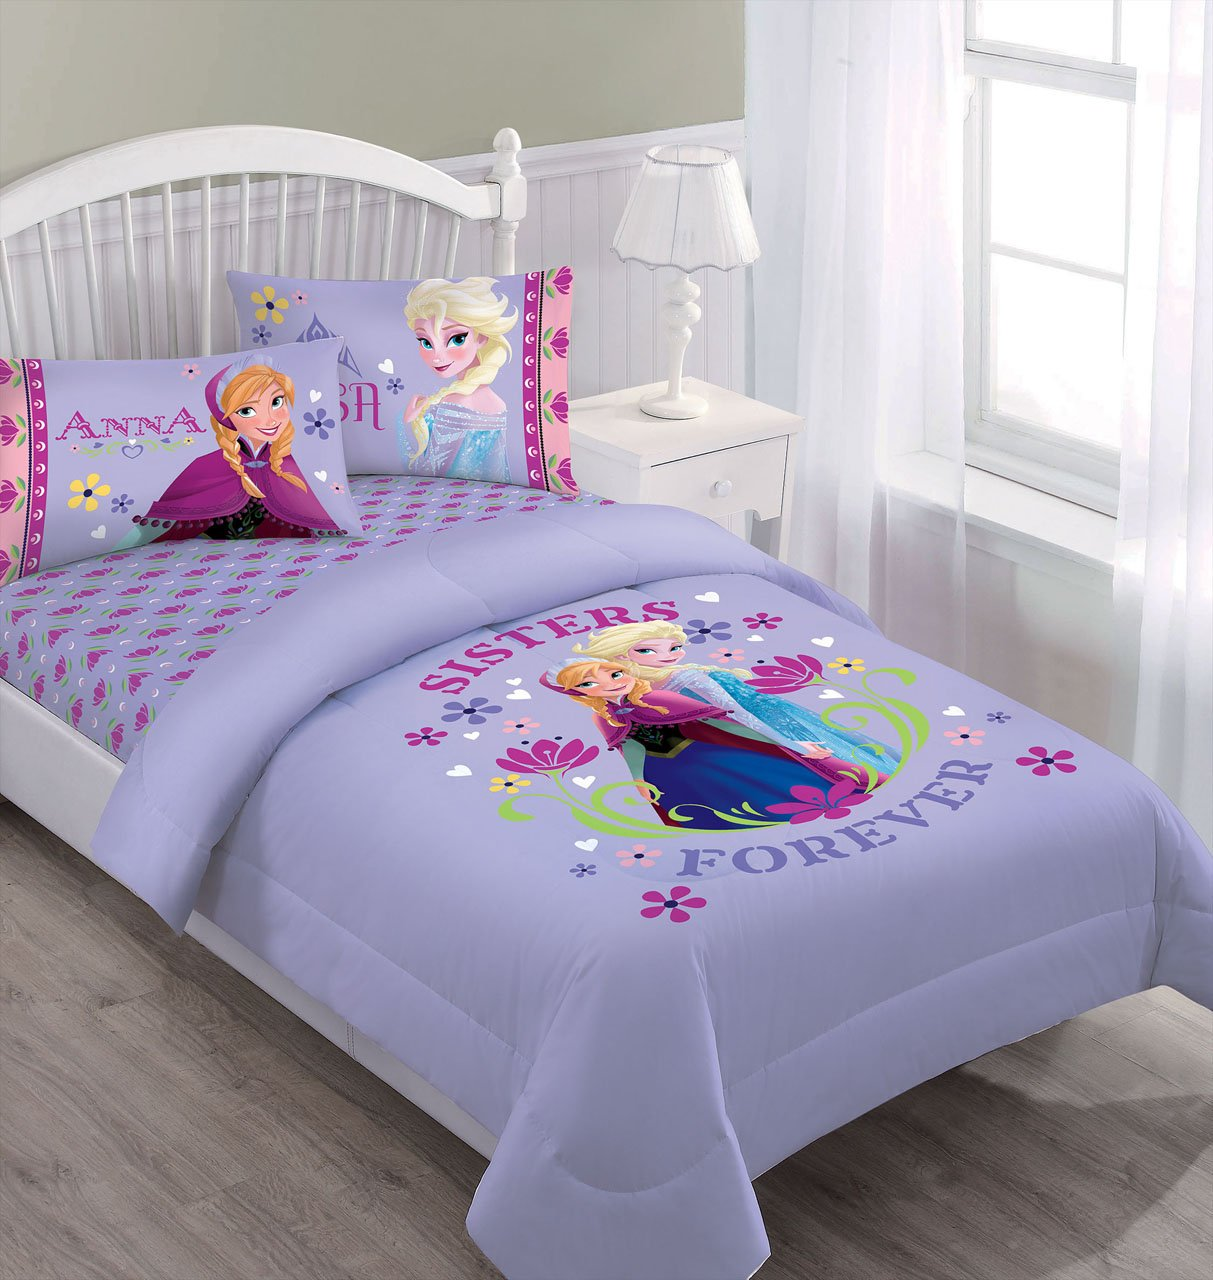 Disney Frozen Nordic Summer Florals Full Comforter, Fitted Sheet